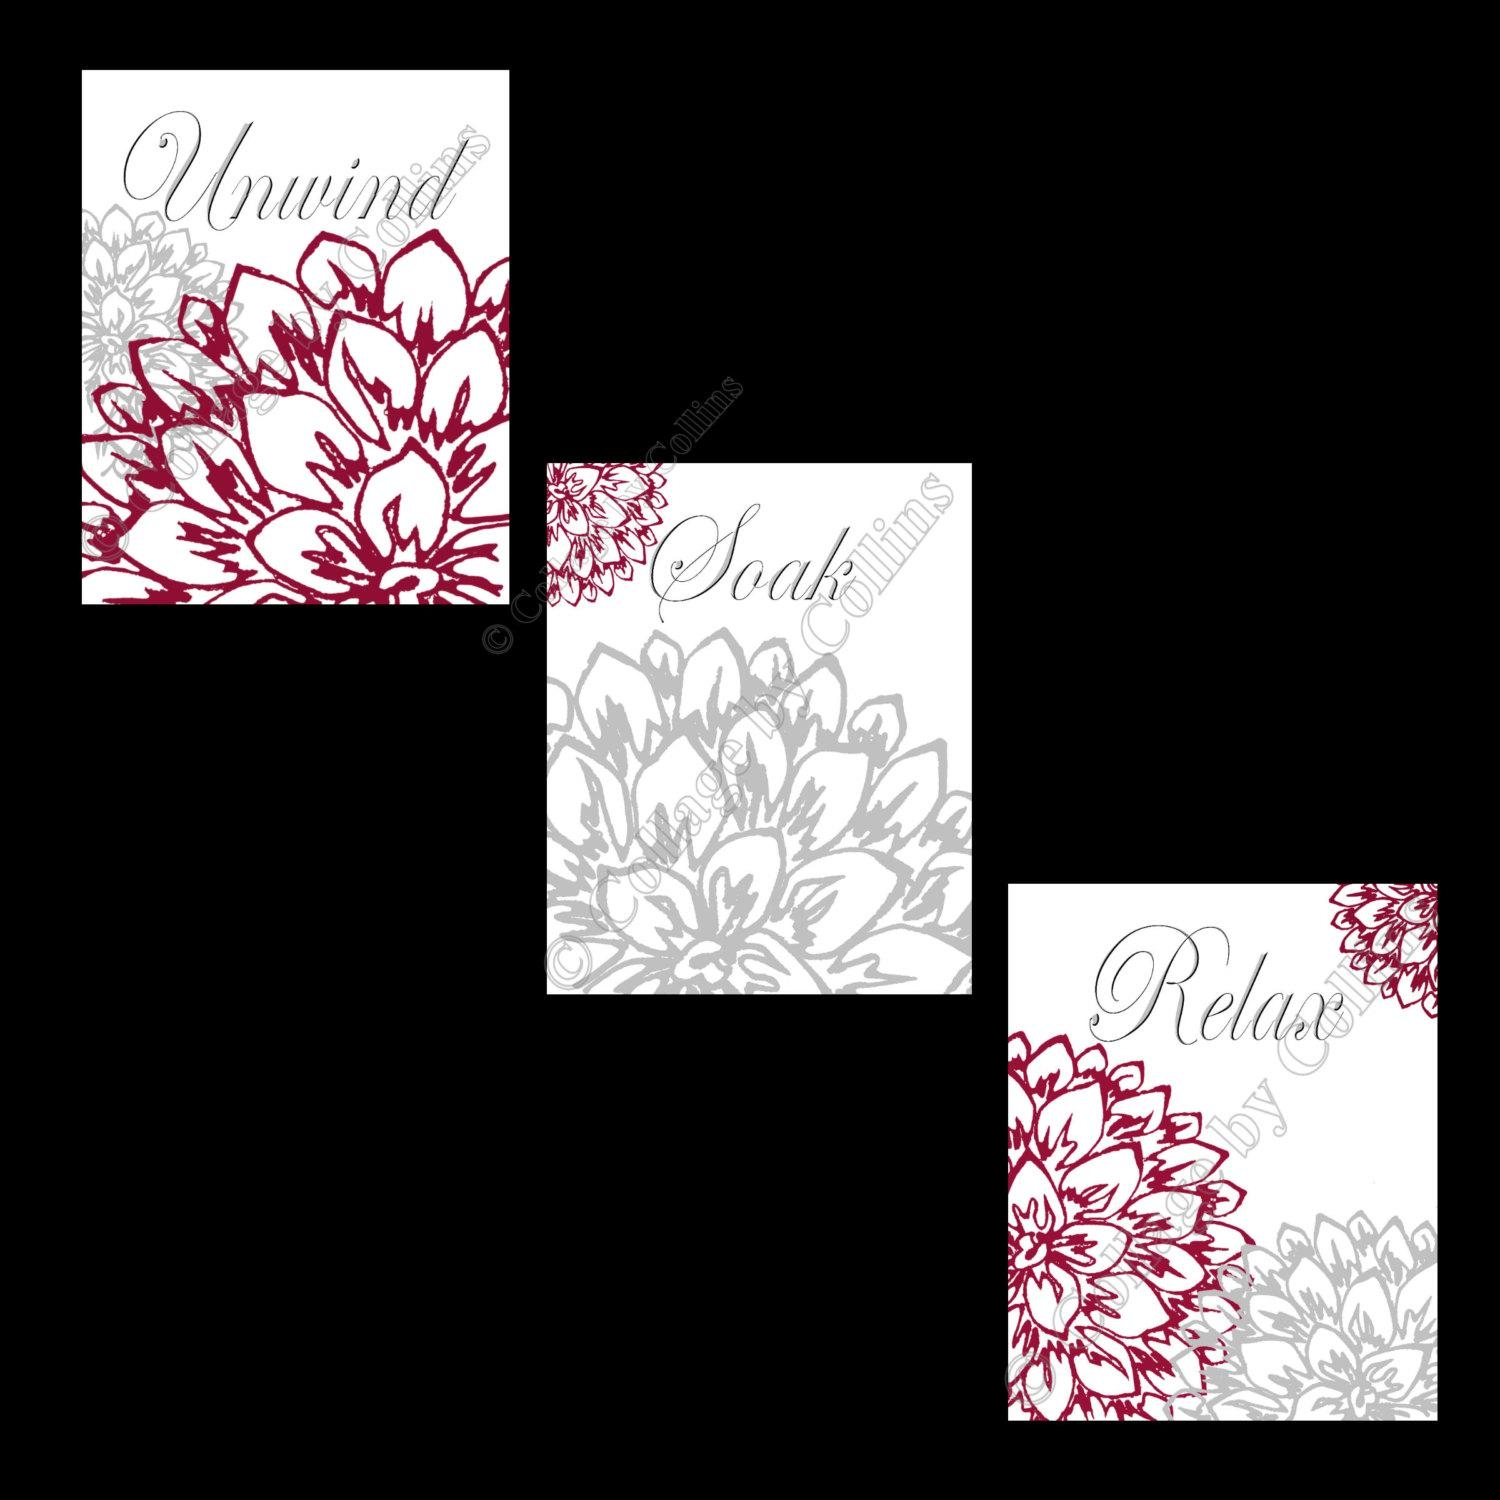 Floral Flower Gray And Burgundy Wall Art Prints Decor Bathroom With Burgundy Wall Art (Image 9 of 20)